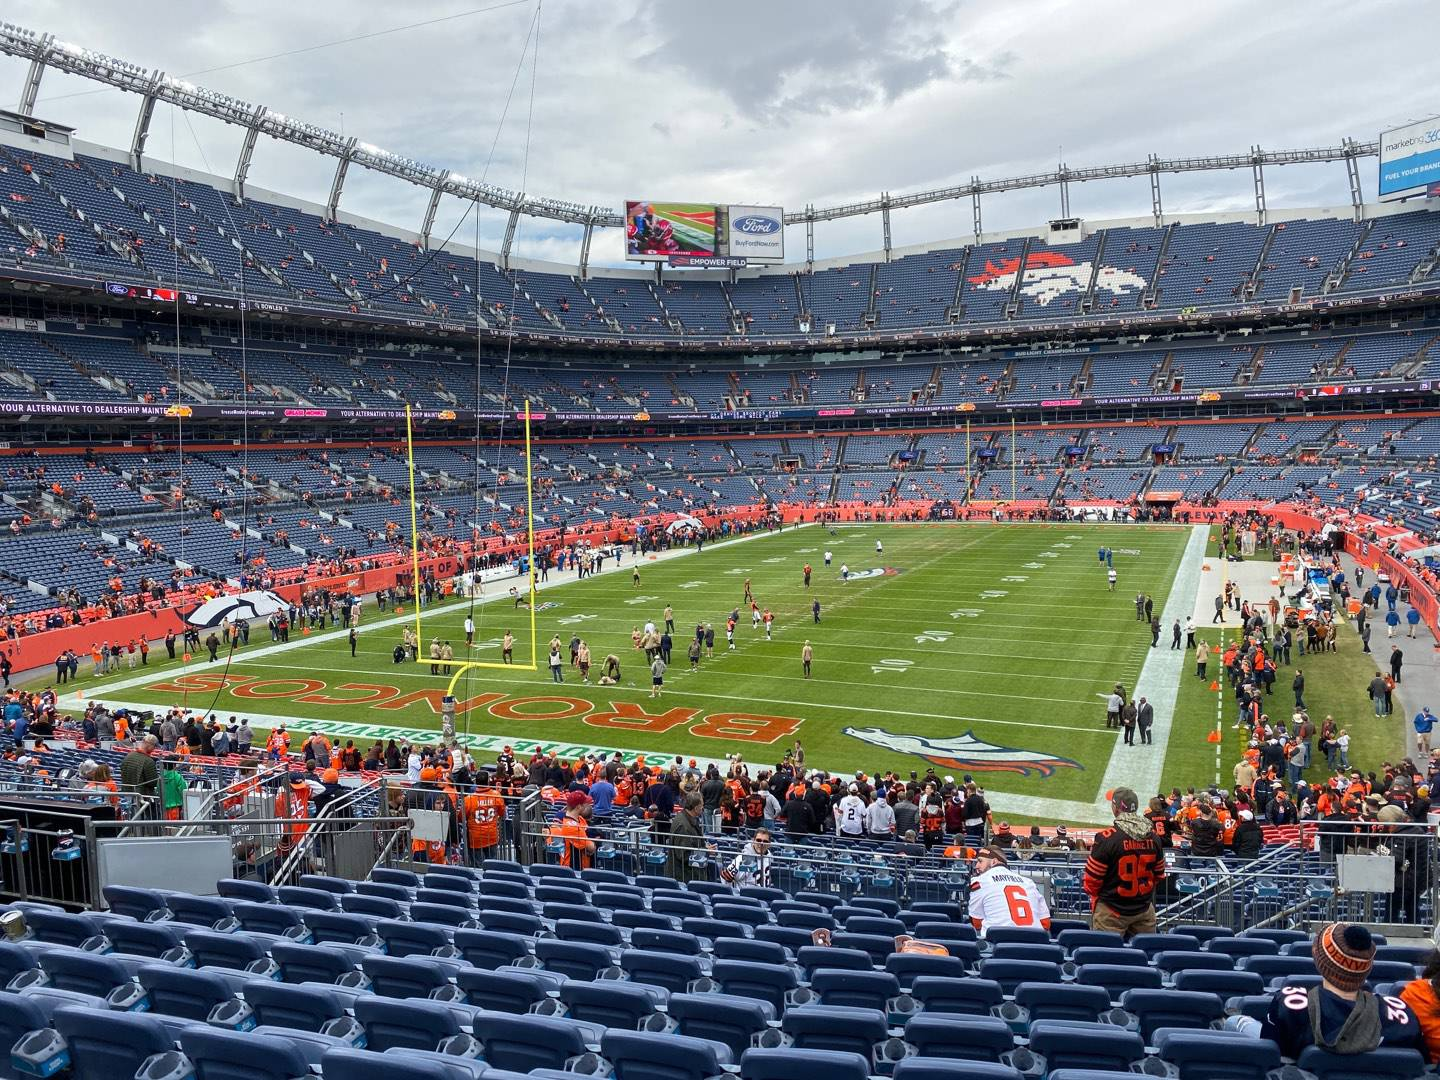 Empower Field at Mile High Stadium Section 130 Rangée 37 Siège 7